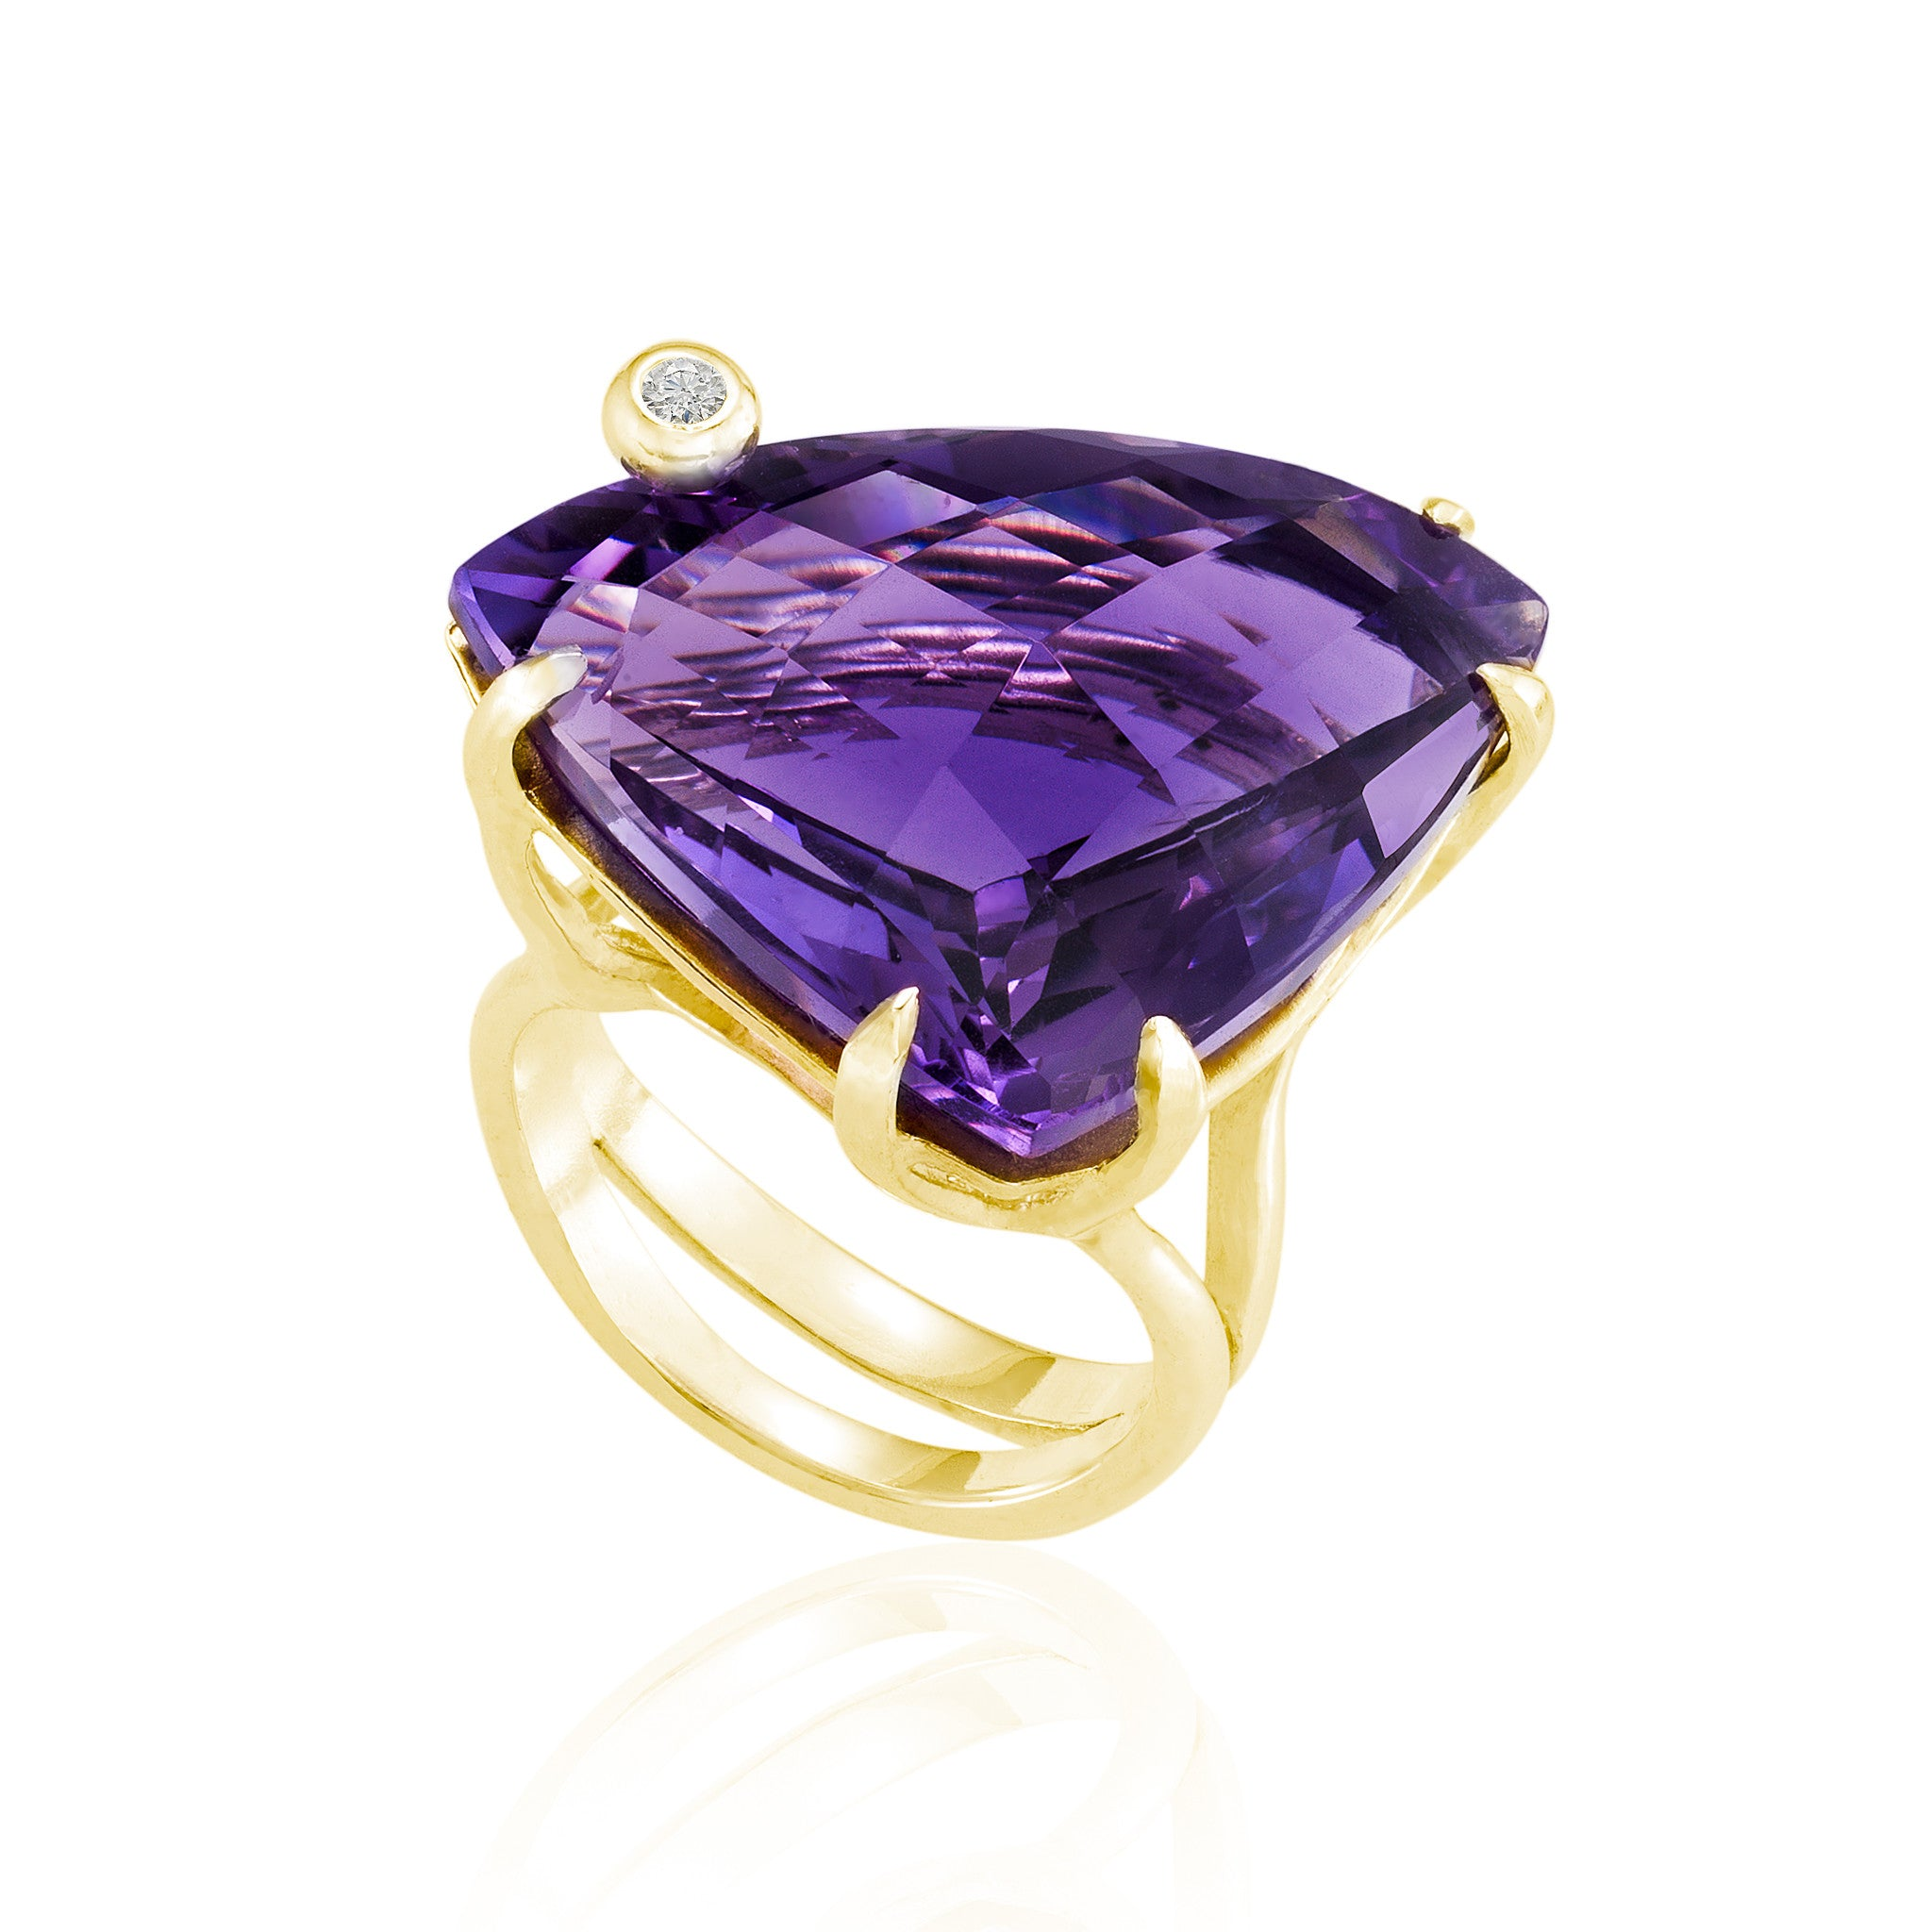 white jewelry mauboussin amethist gold ring multi amethyst s women rings sapphire engagement